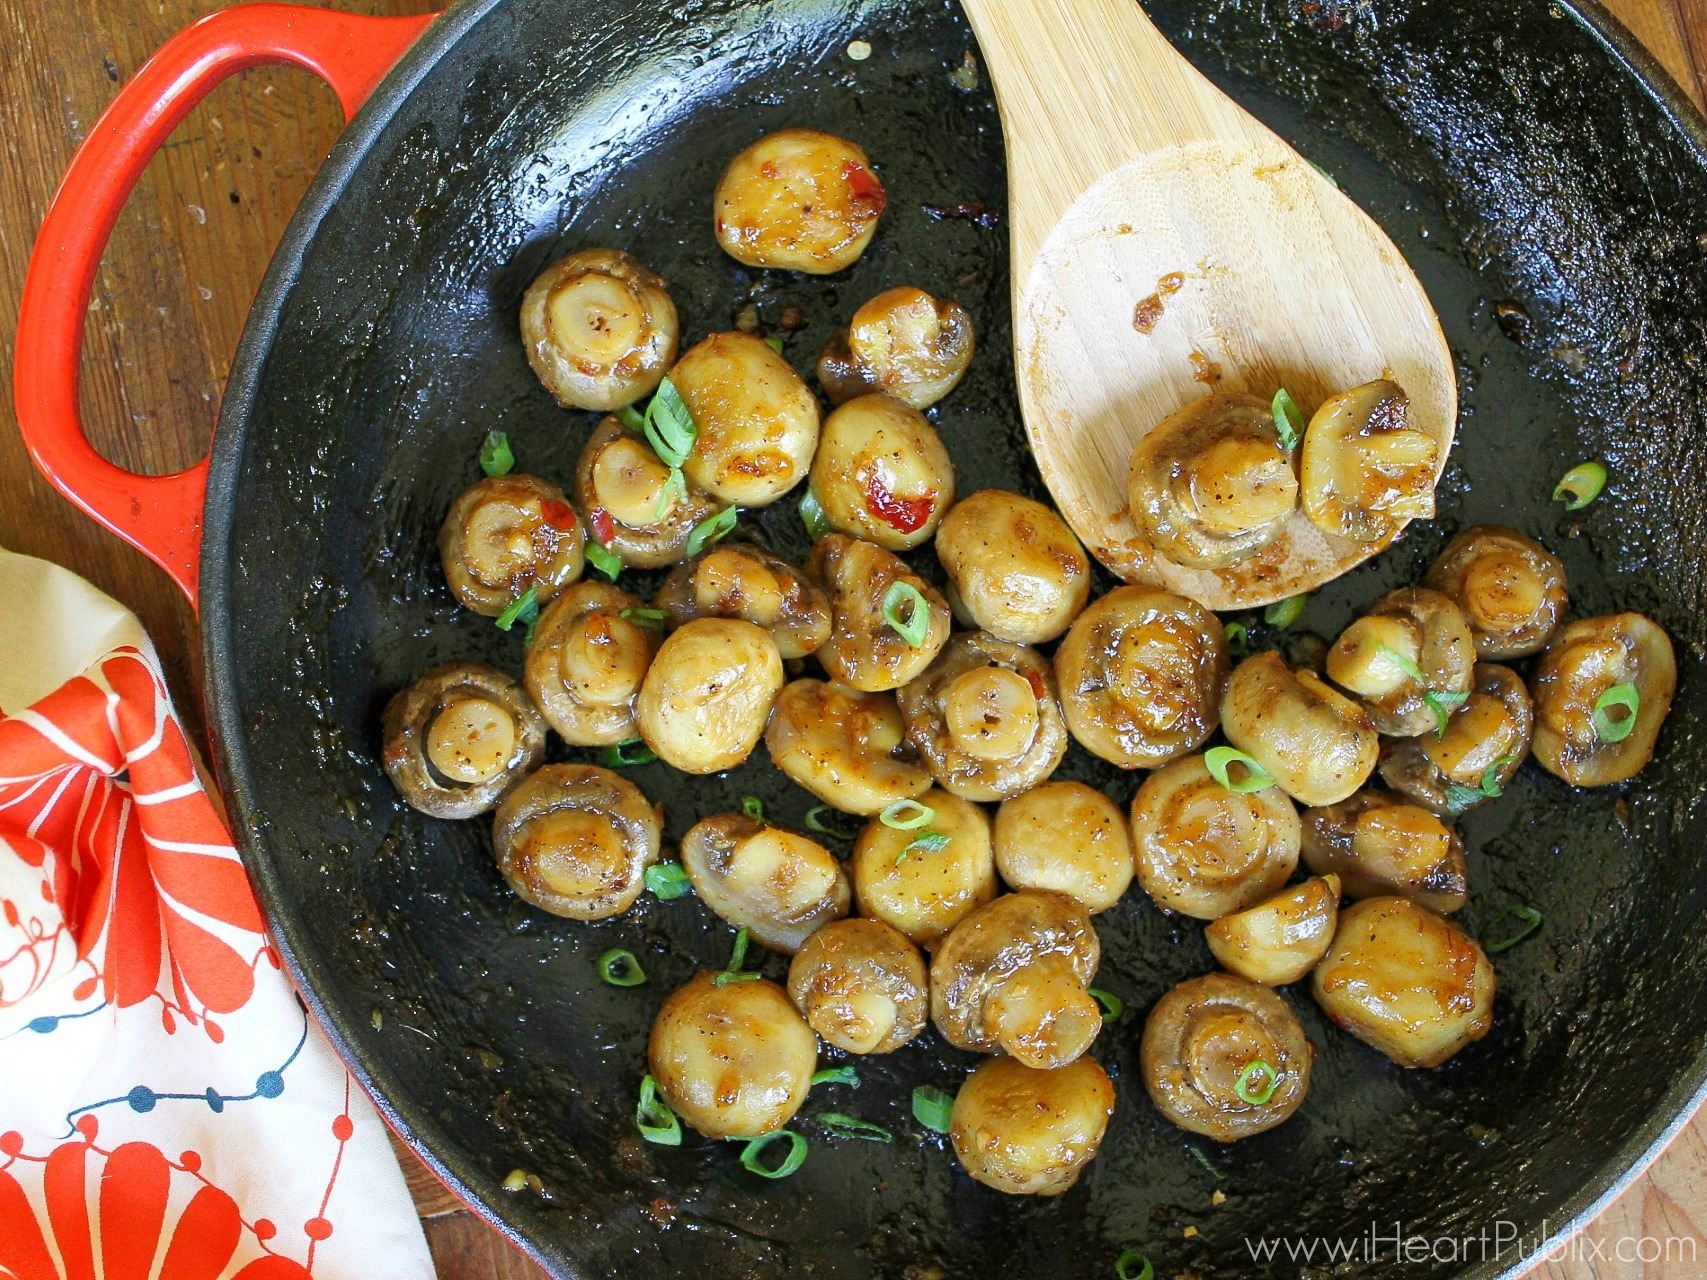 Sweet Chili Glazed Mushrooms - Delicious Recipe For The I Can't Believe It's Not Butter! BOGO Sale on I Heart Publix 1